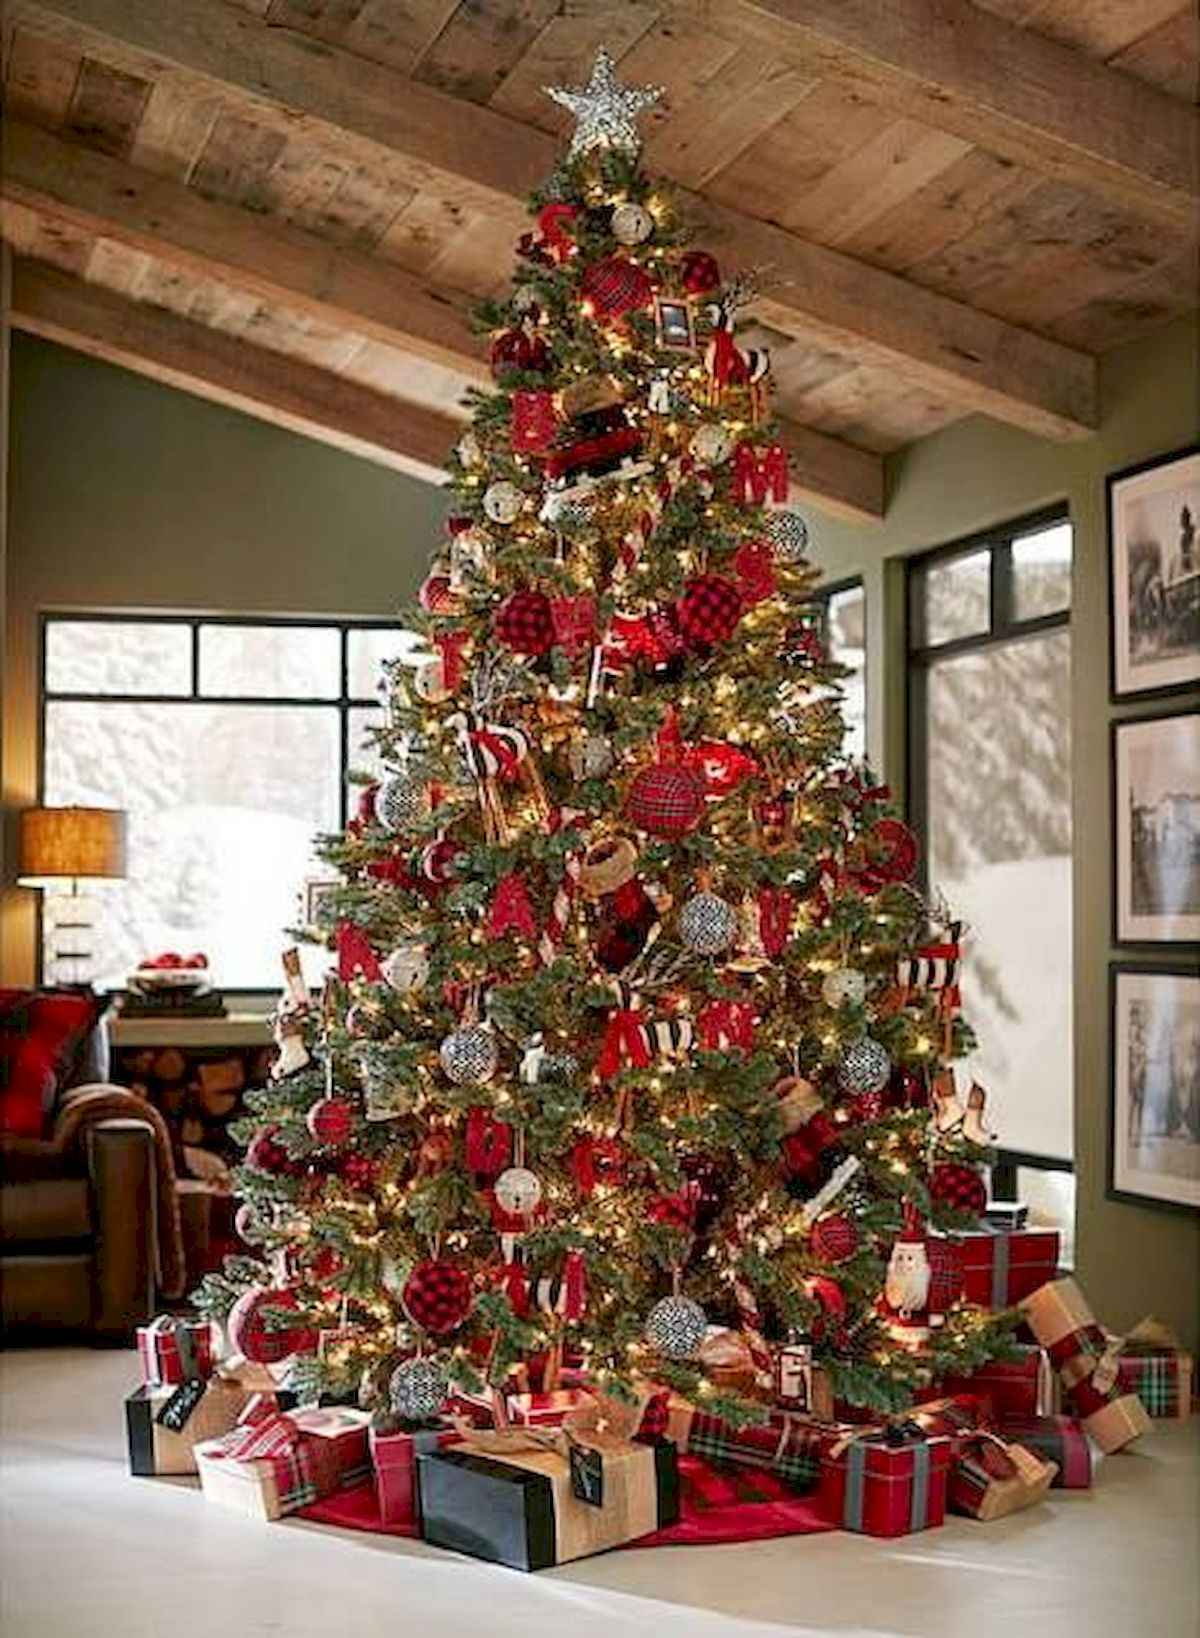 60 awesome christmas tree decorations ideas (20)